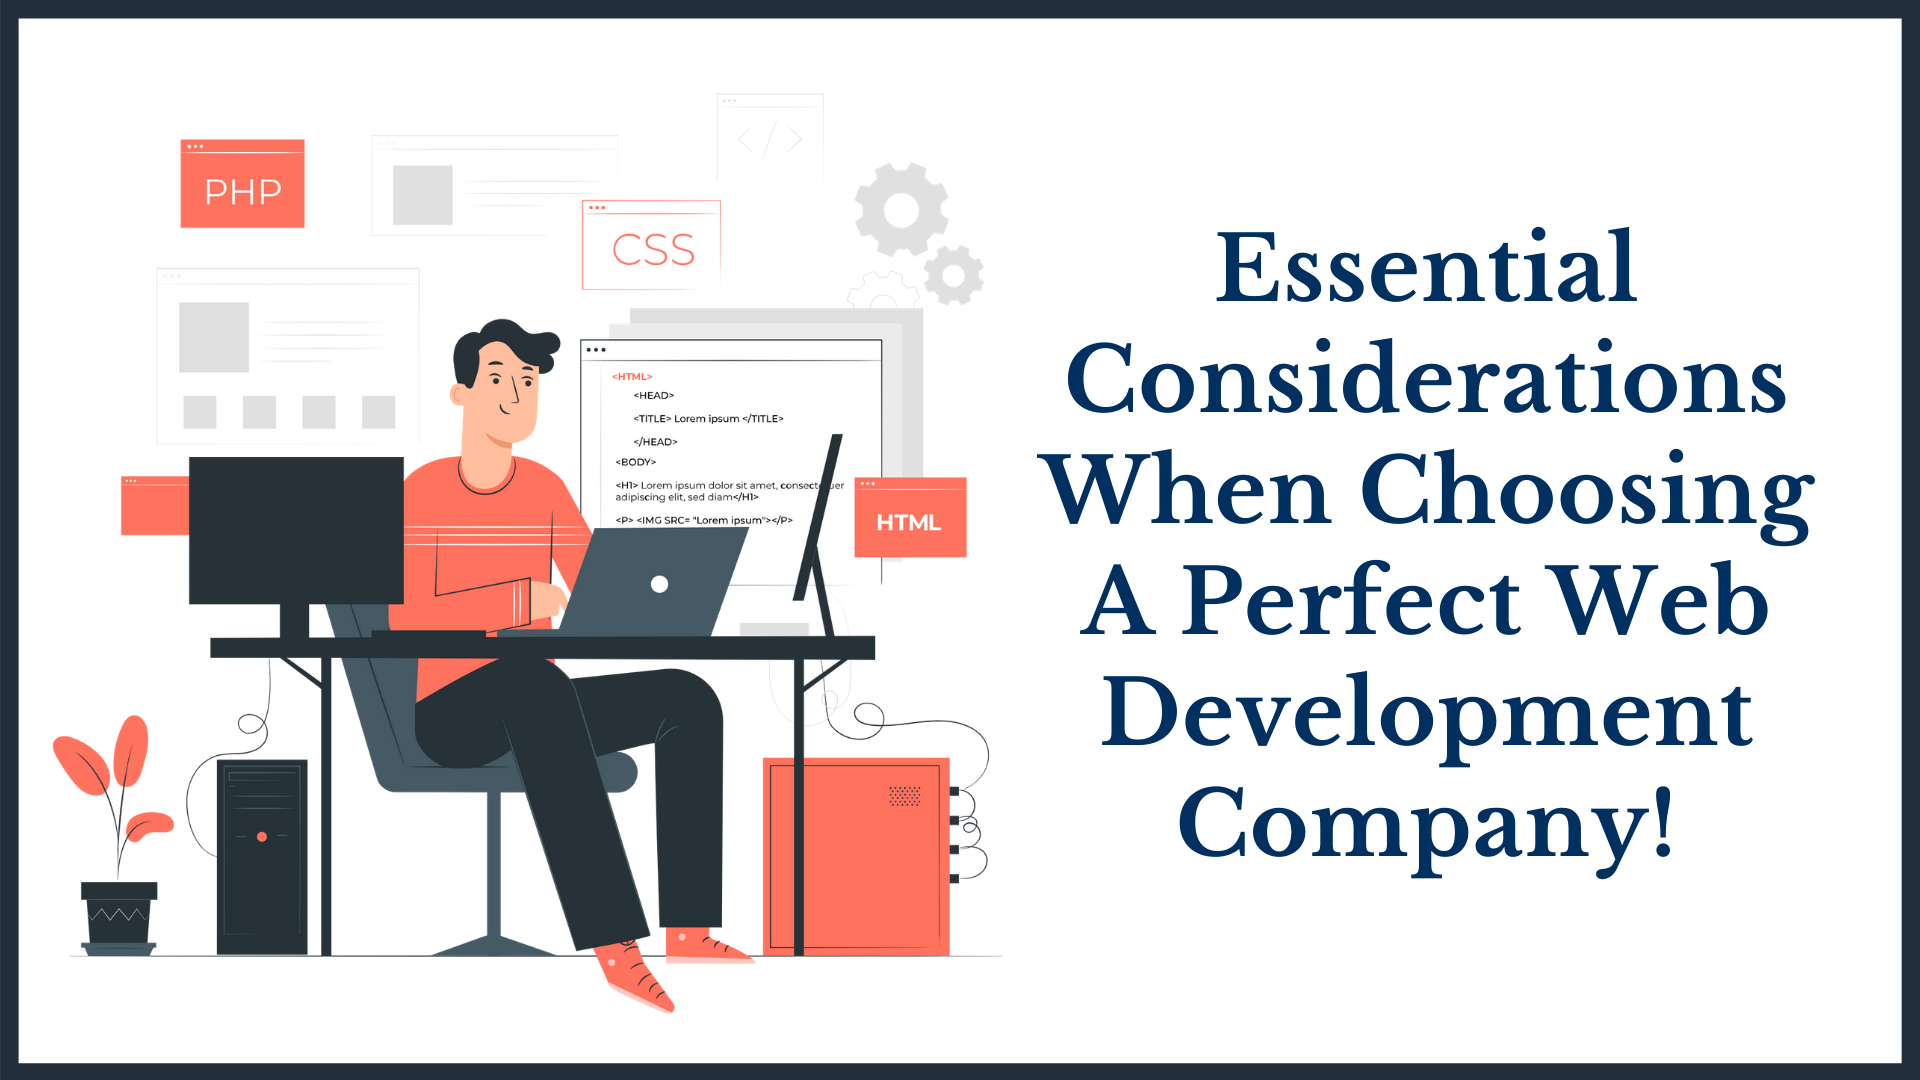 Essential considerations while choosing a Web Development company